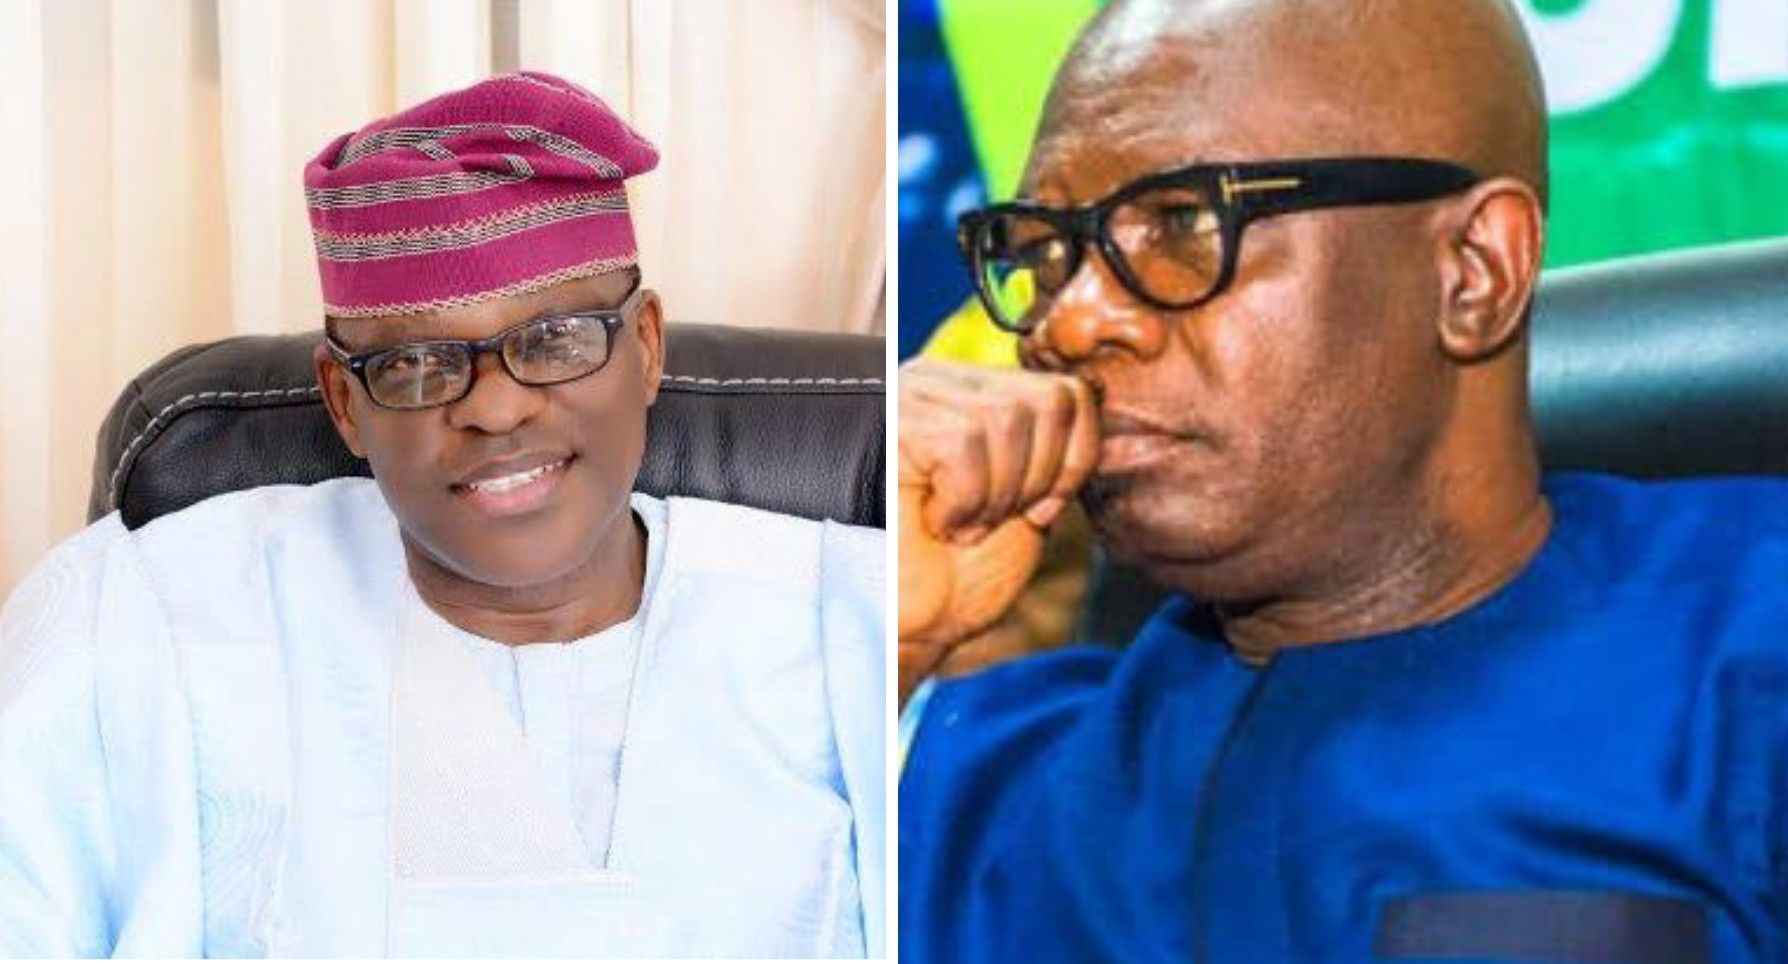 Ondo PDP Primary: Ondo Deputy Gov, Ajayi reacts after defeat to Jegede